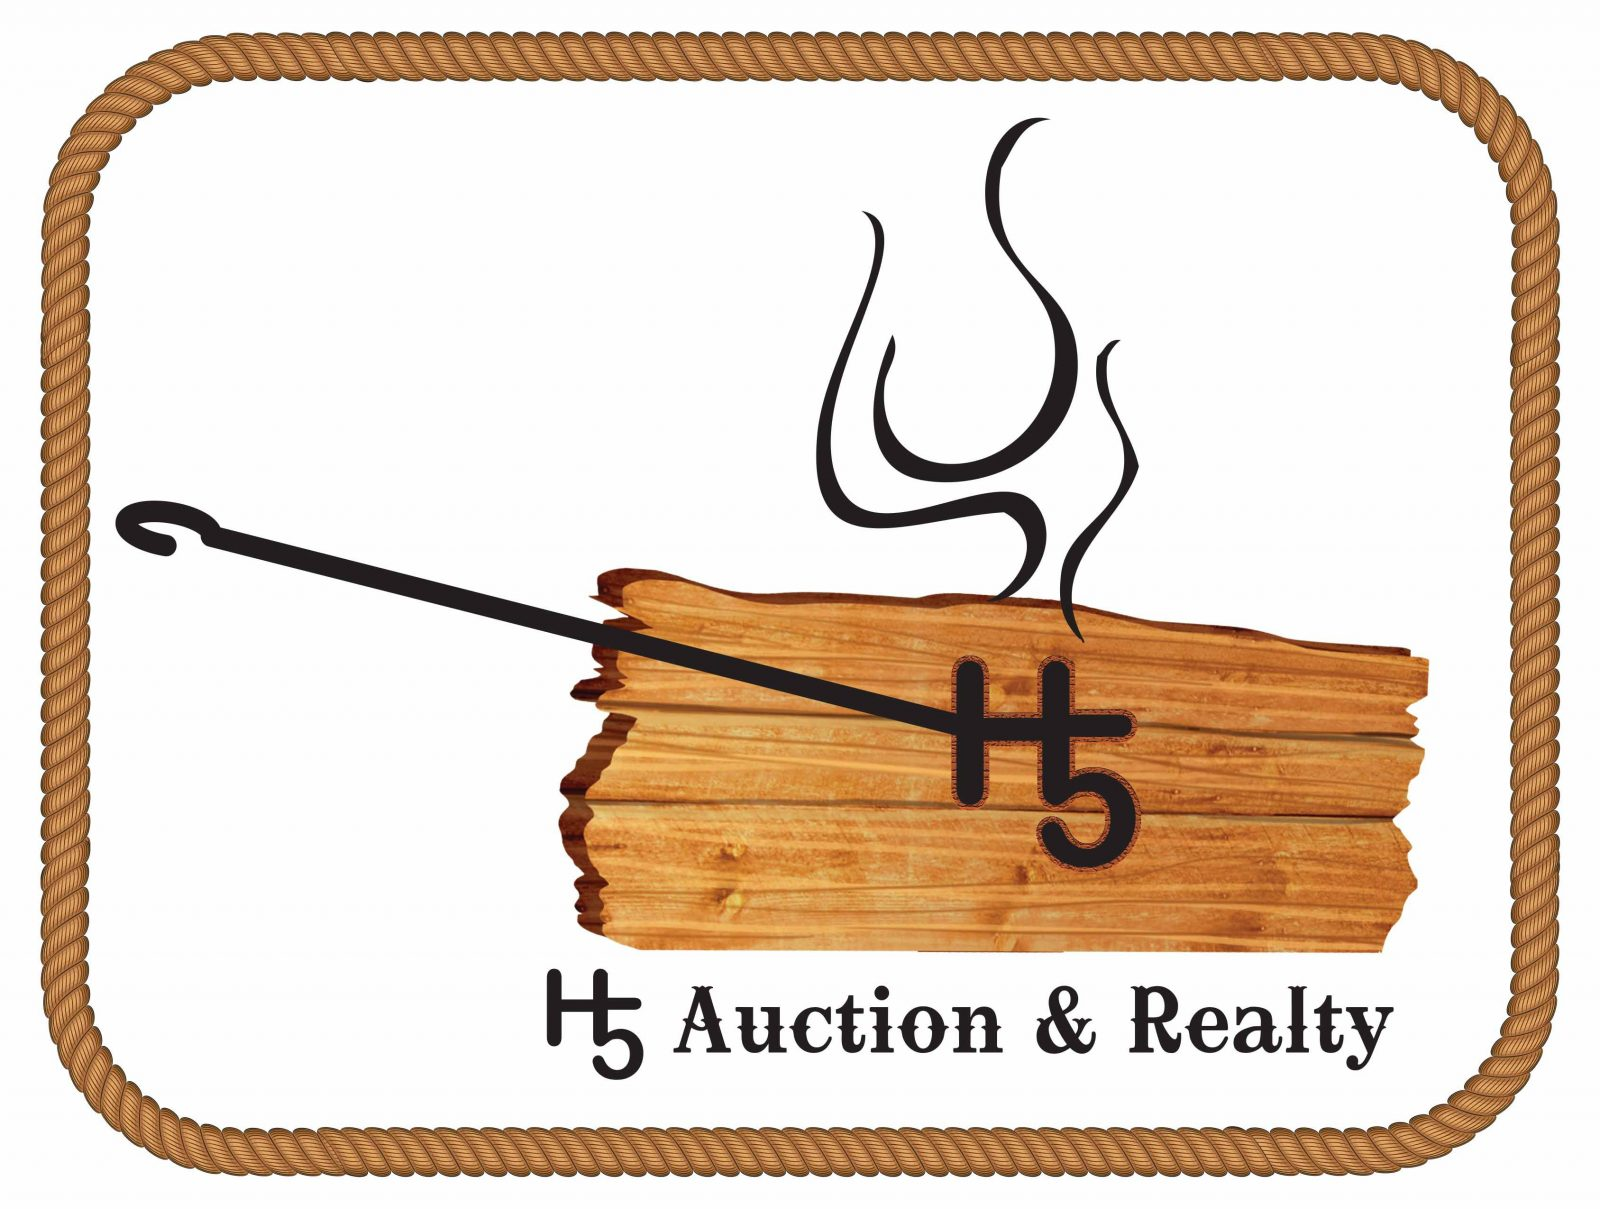 H5 Auction and Realty, Longview